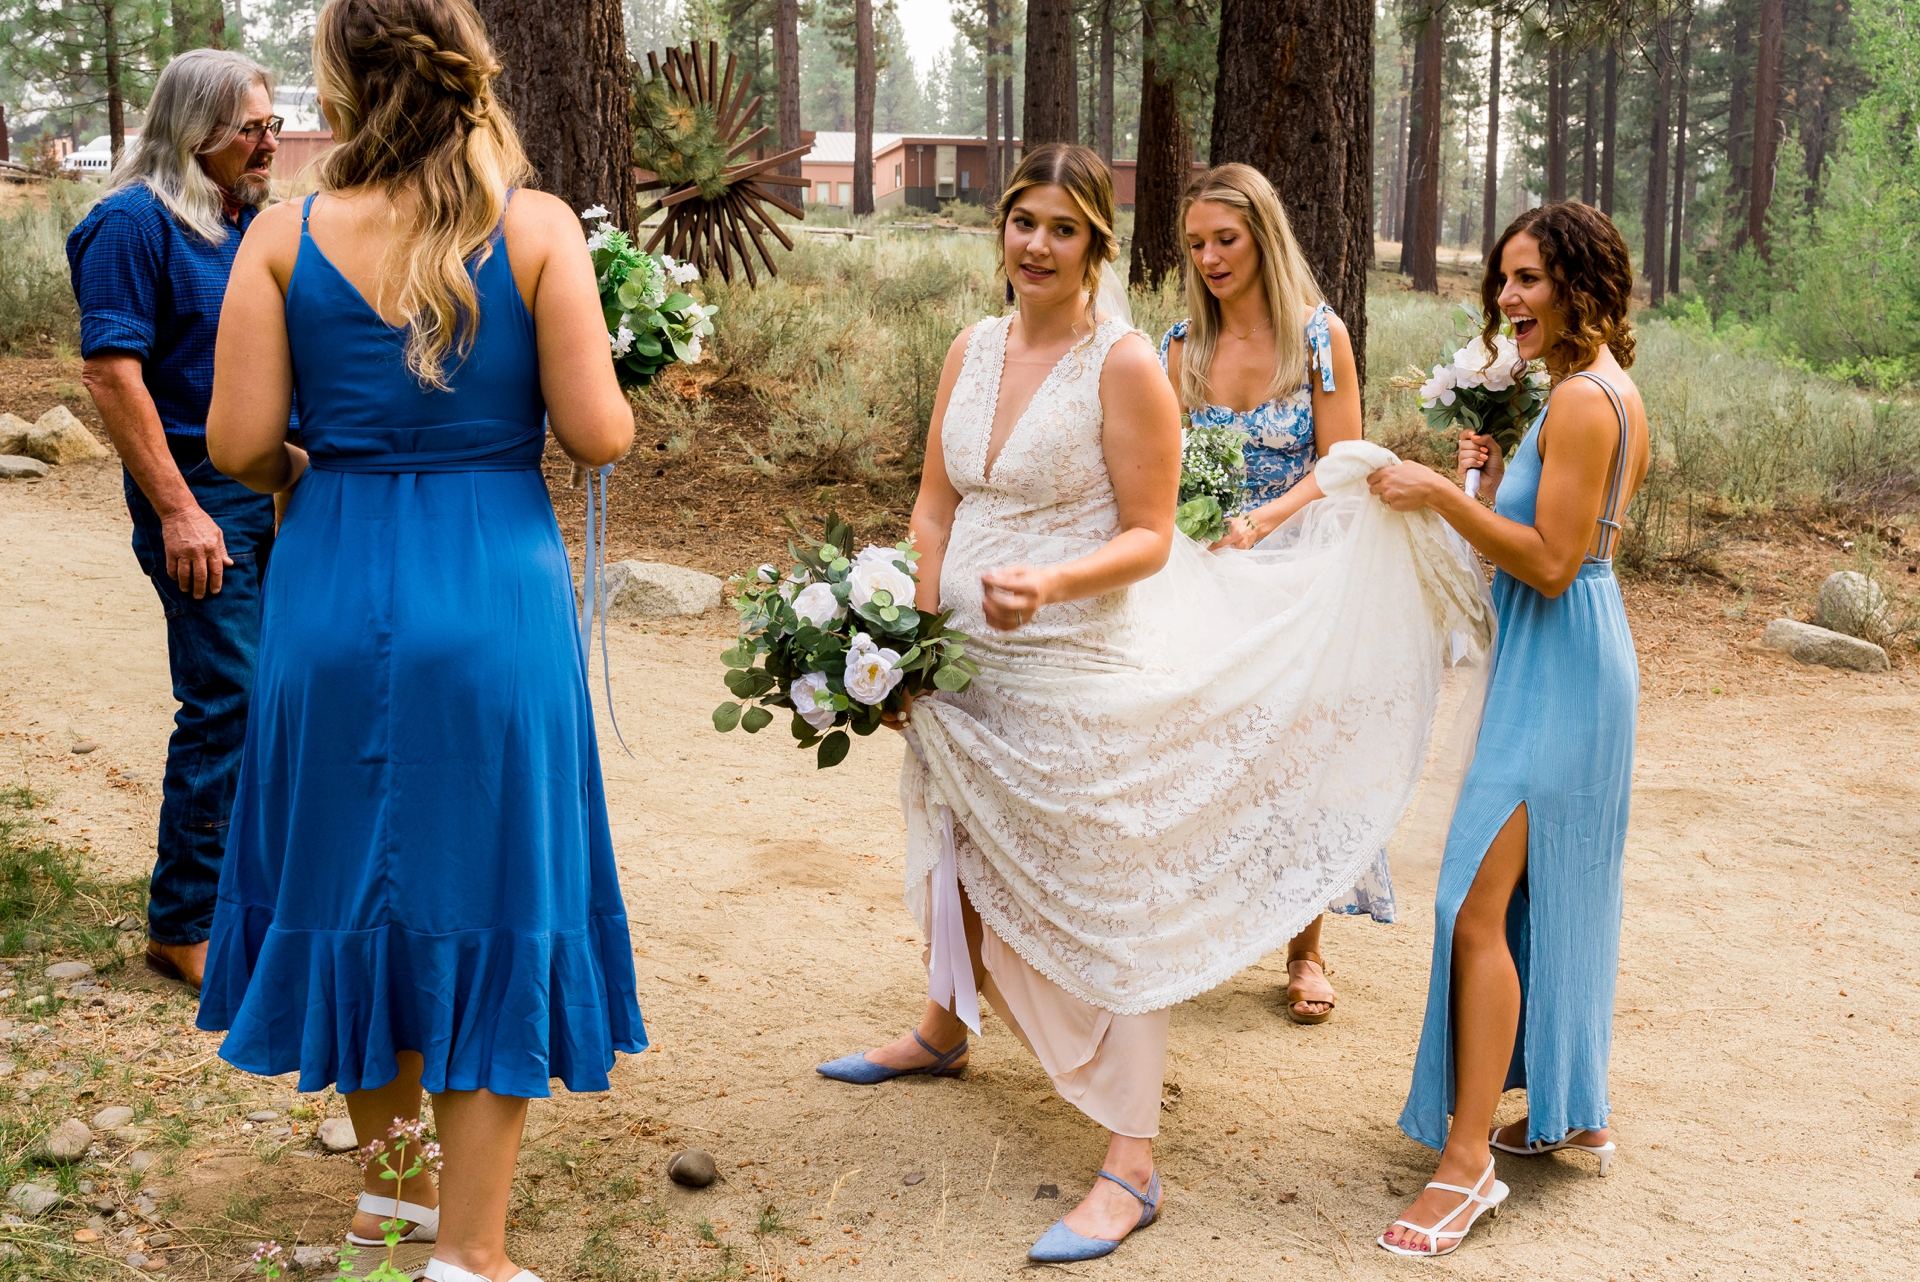 LTCC, South Lake Tahoe CA Wedding Photography | The wedding party tries to assist the bride by cooling her off